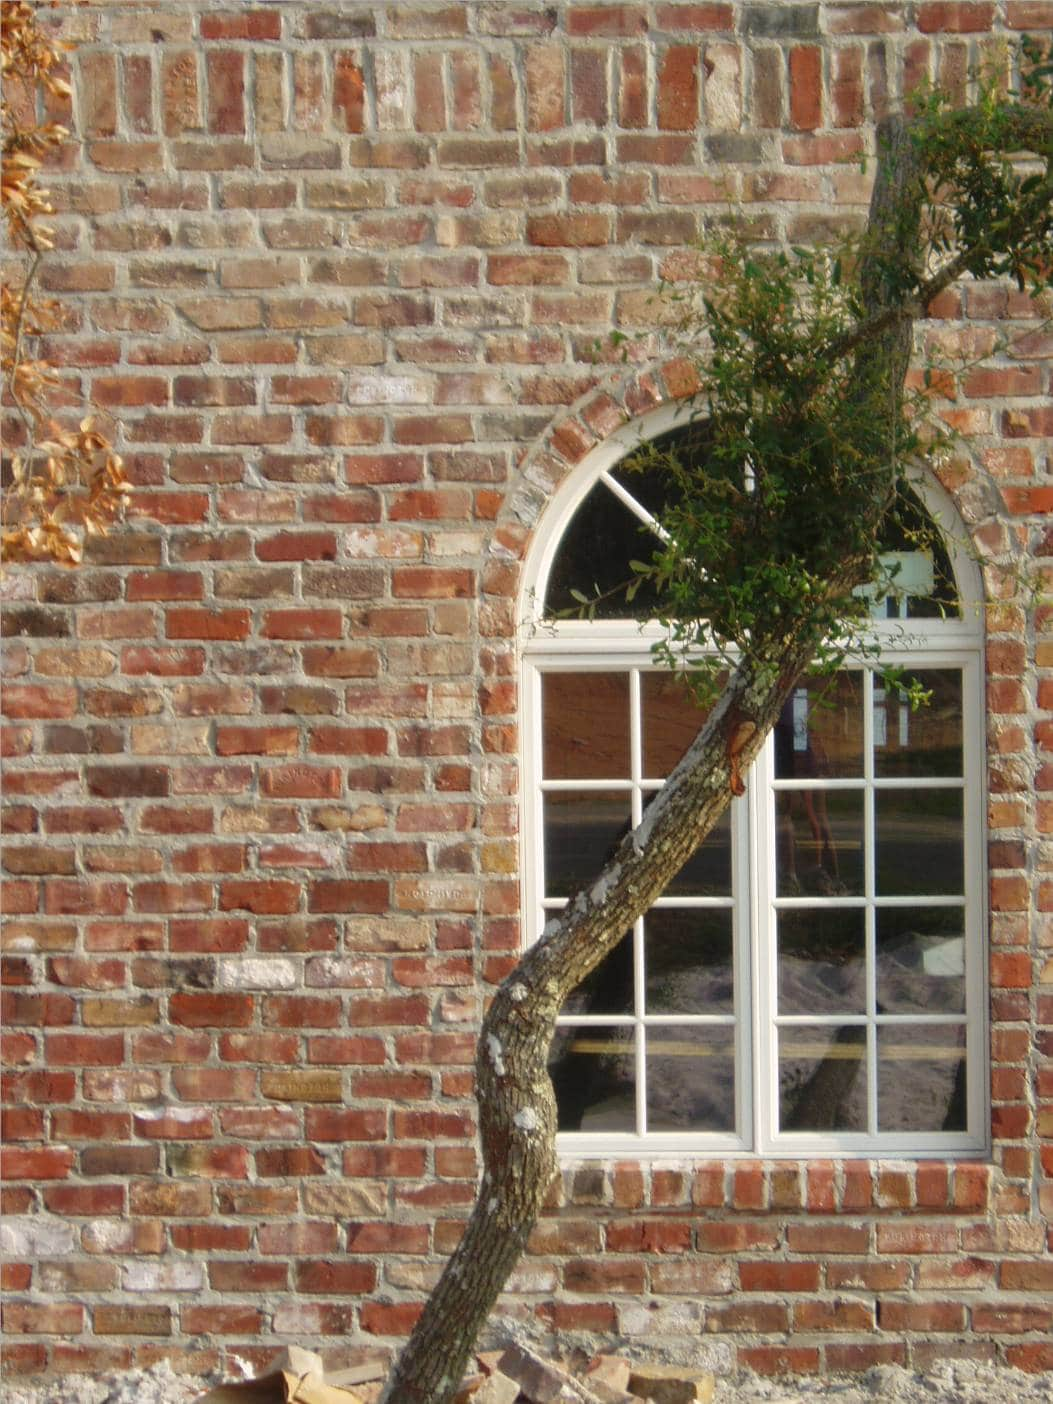 Old tuscany brick wall with a window and a tree branch infront.